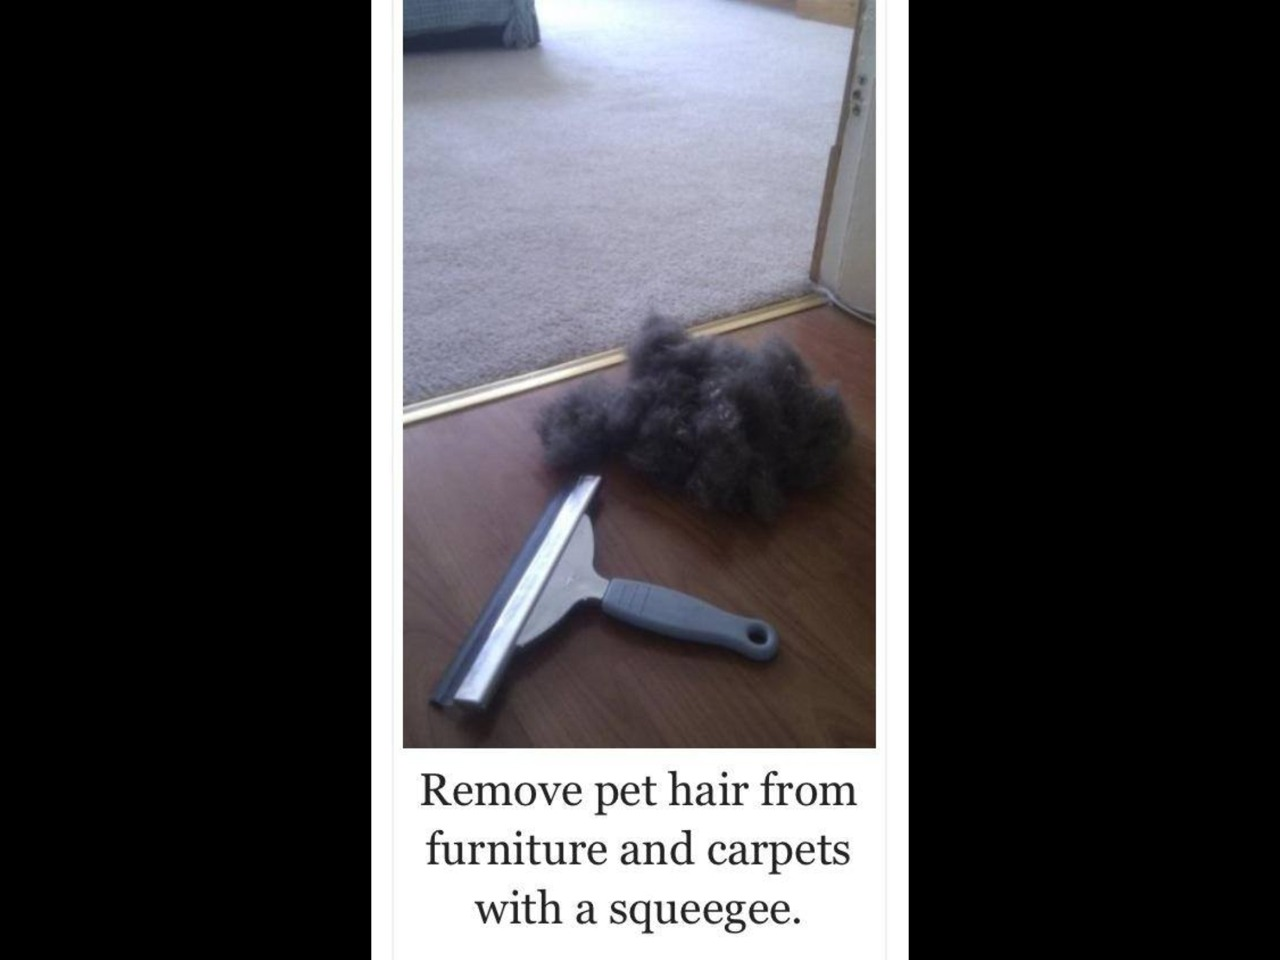 Use Squeegee To Remove Pet Hair From Carpet Furniture Trusper